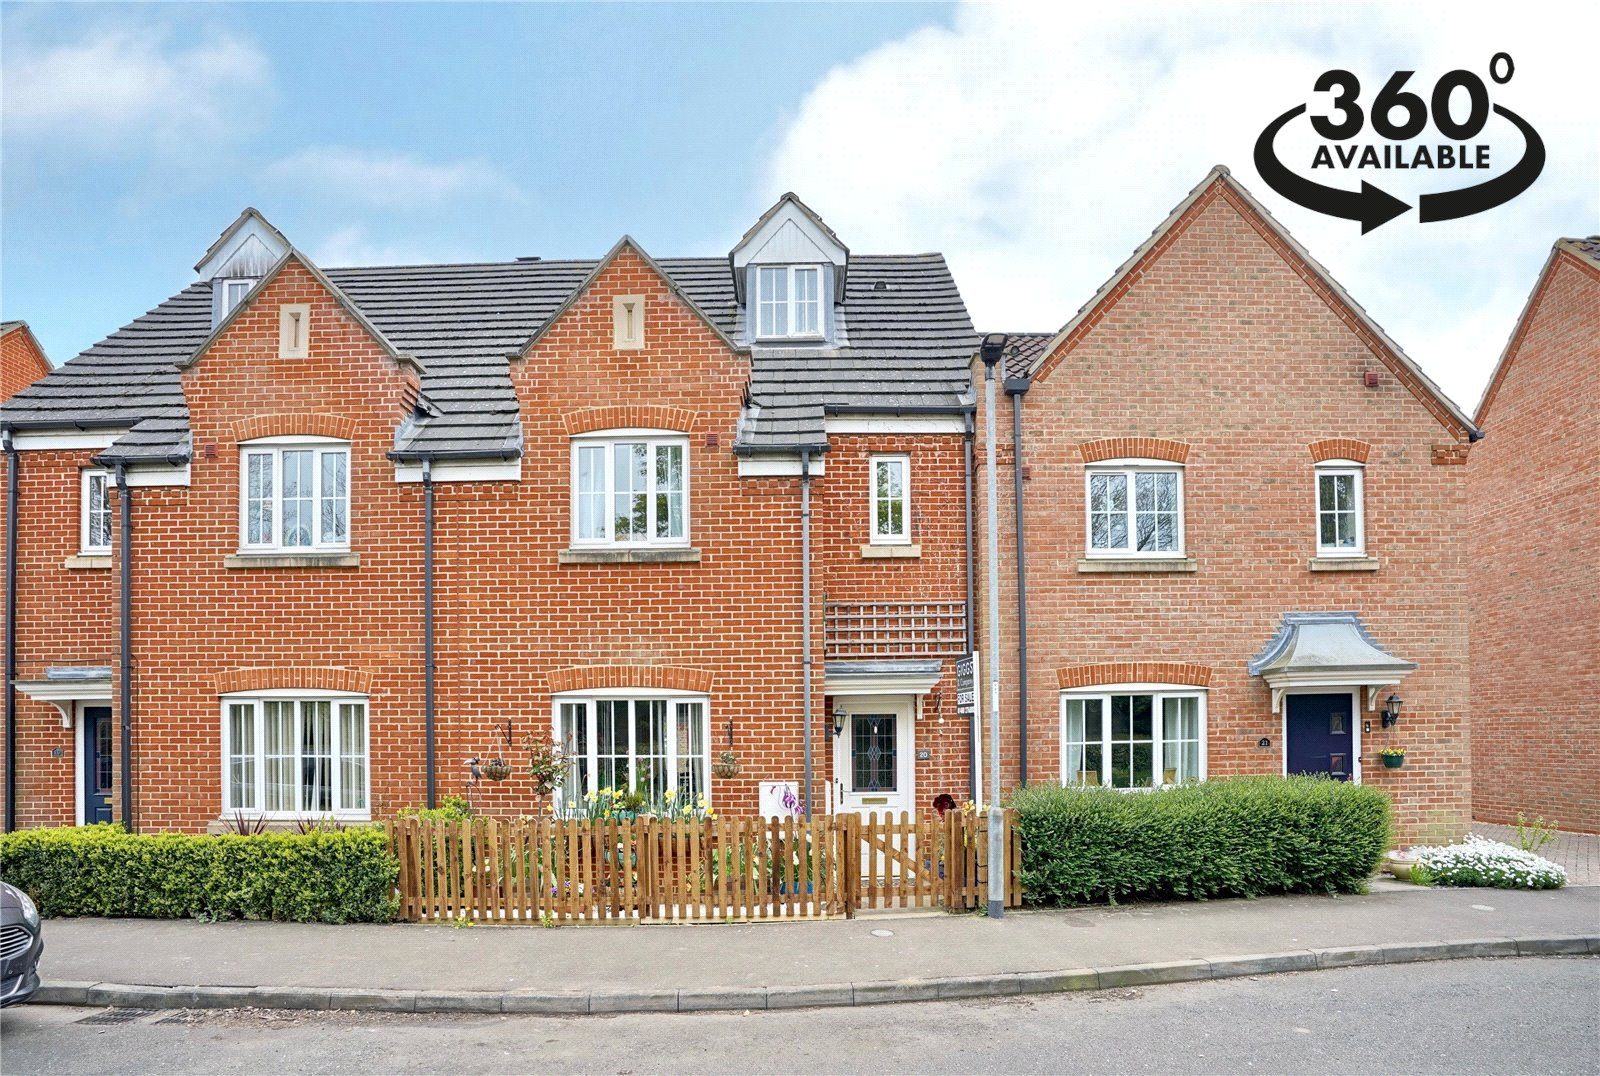 4 bed house for sale in Beaufort Drive, Buckden, PE19